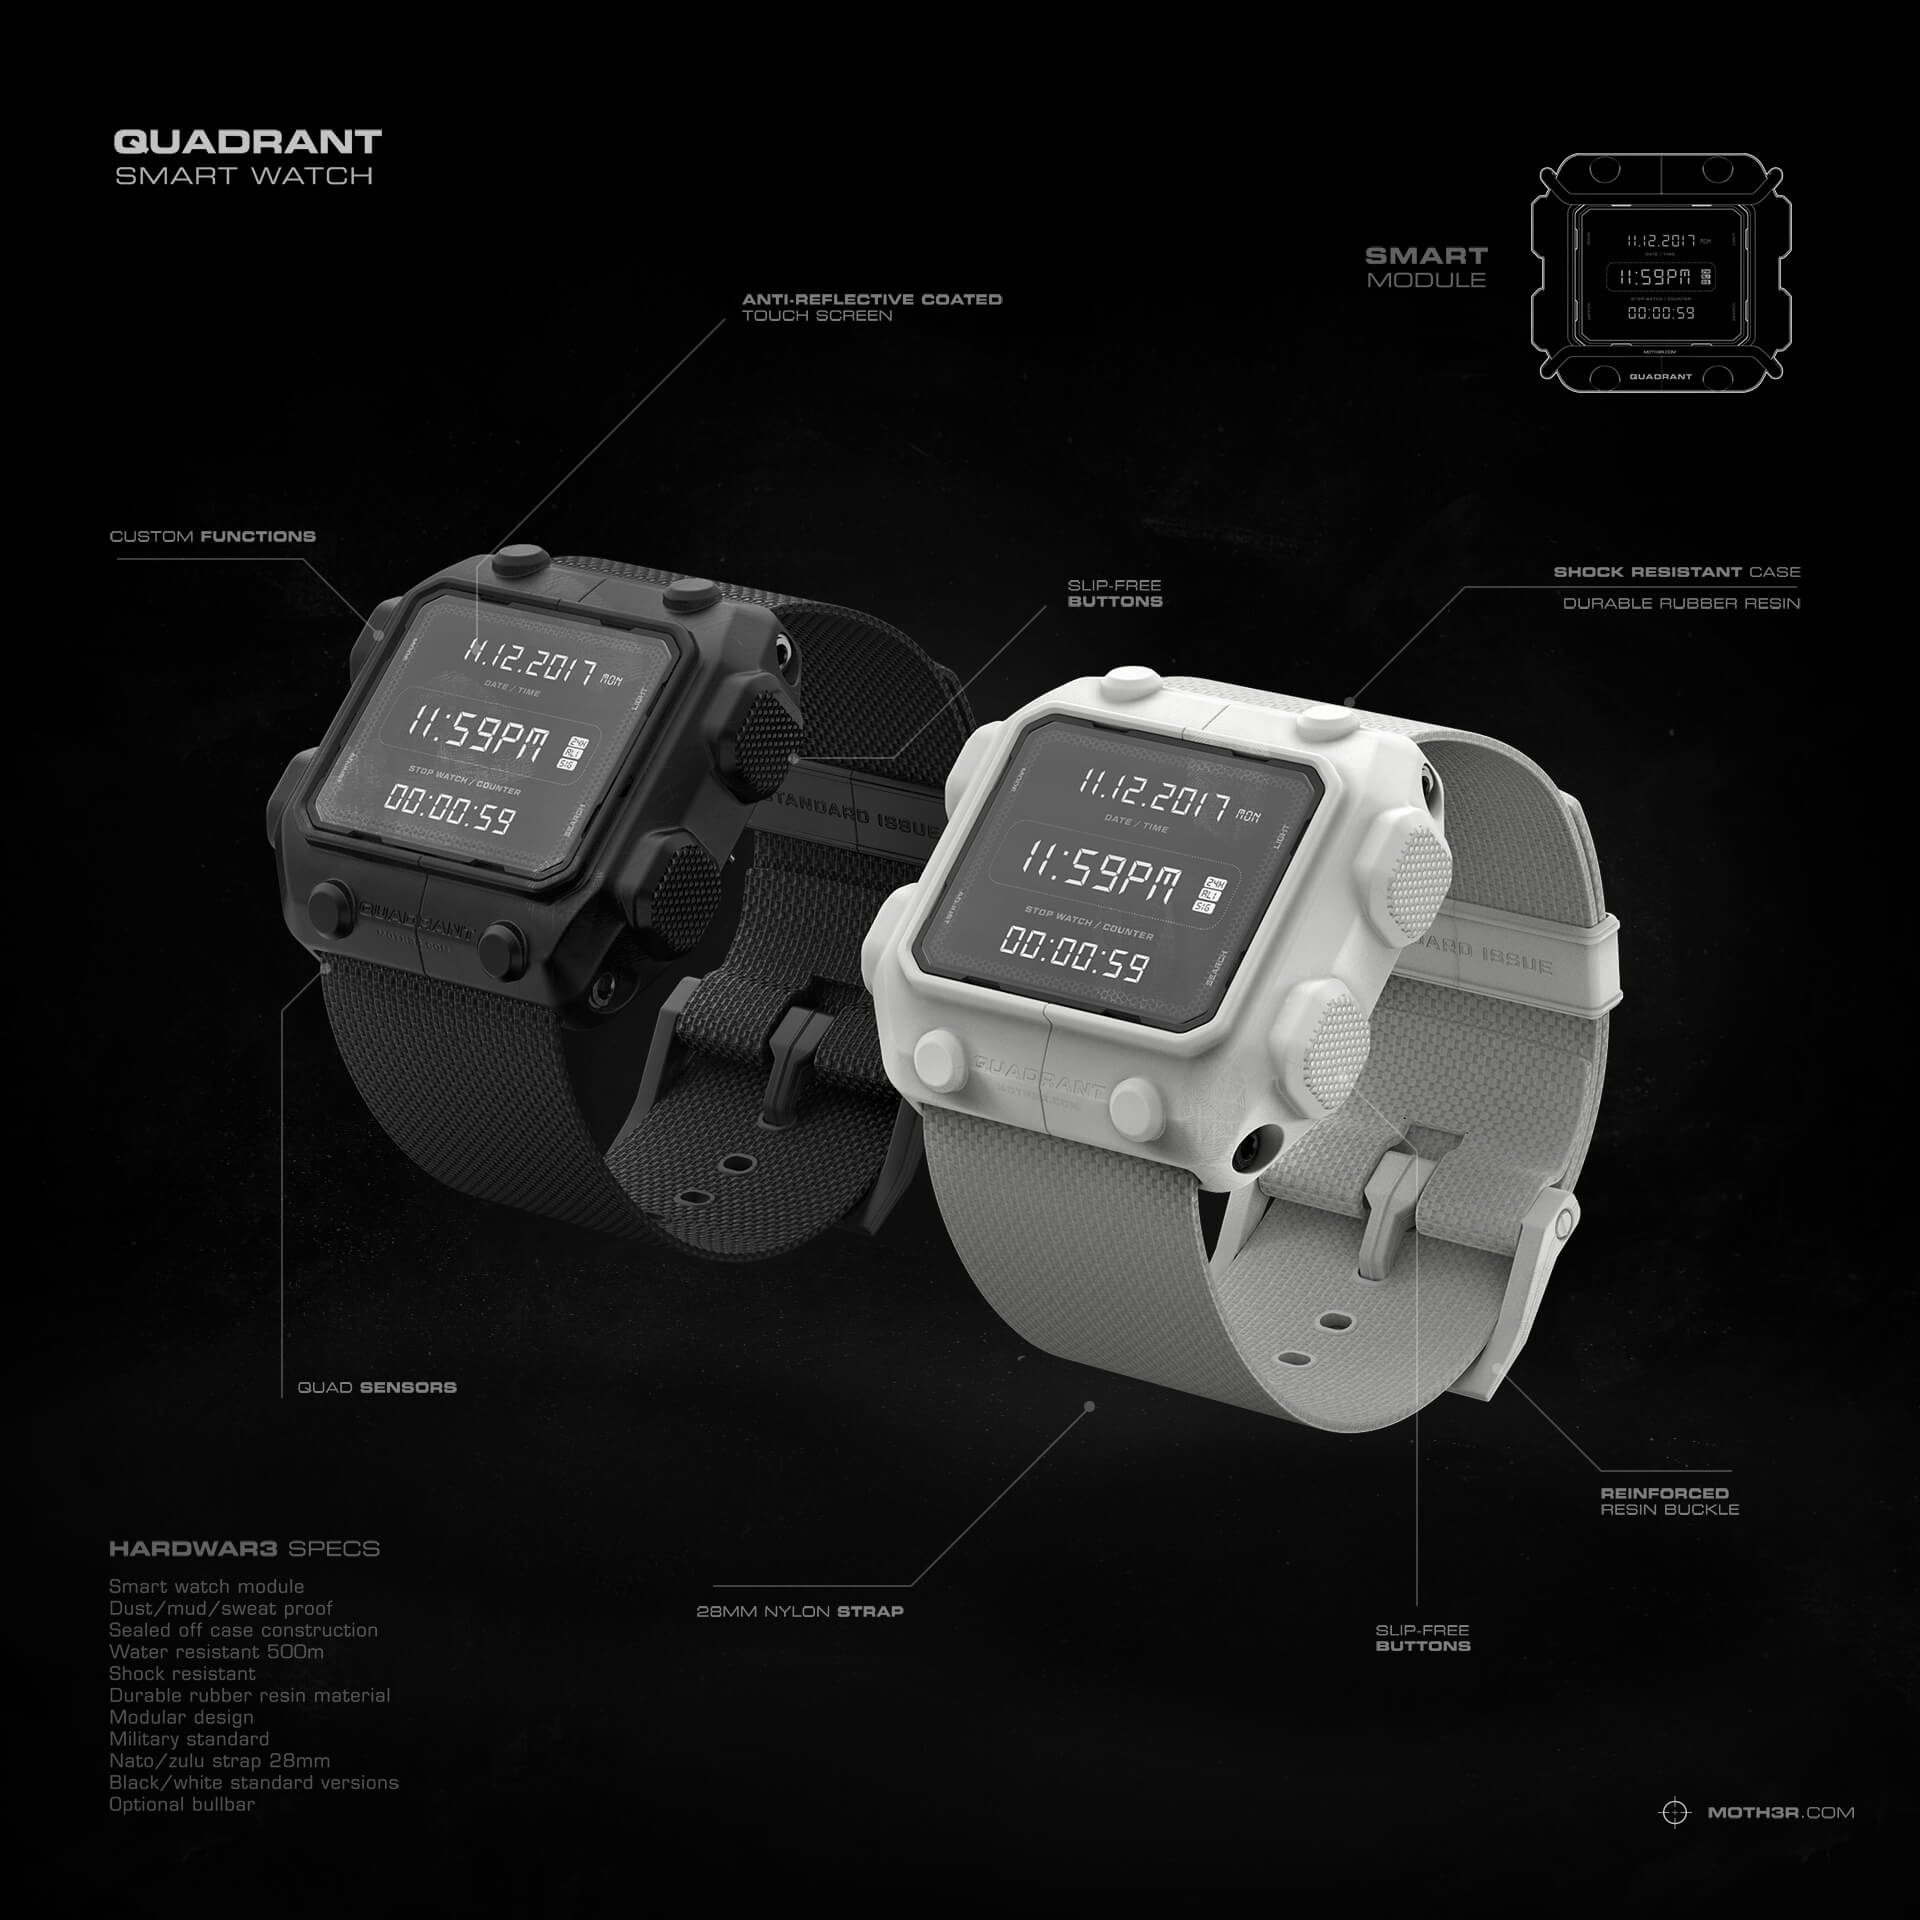 Watch-Render-g02-Dual